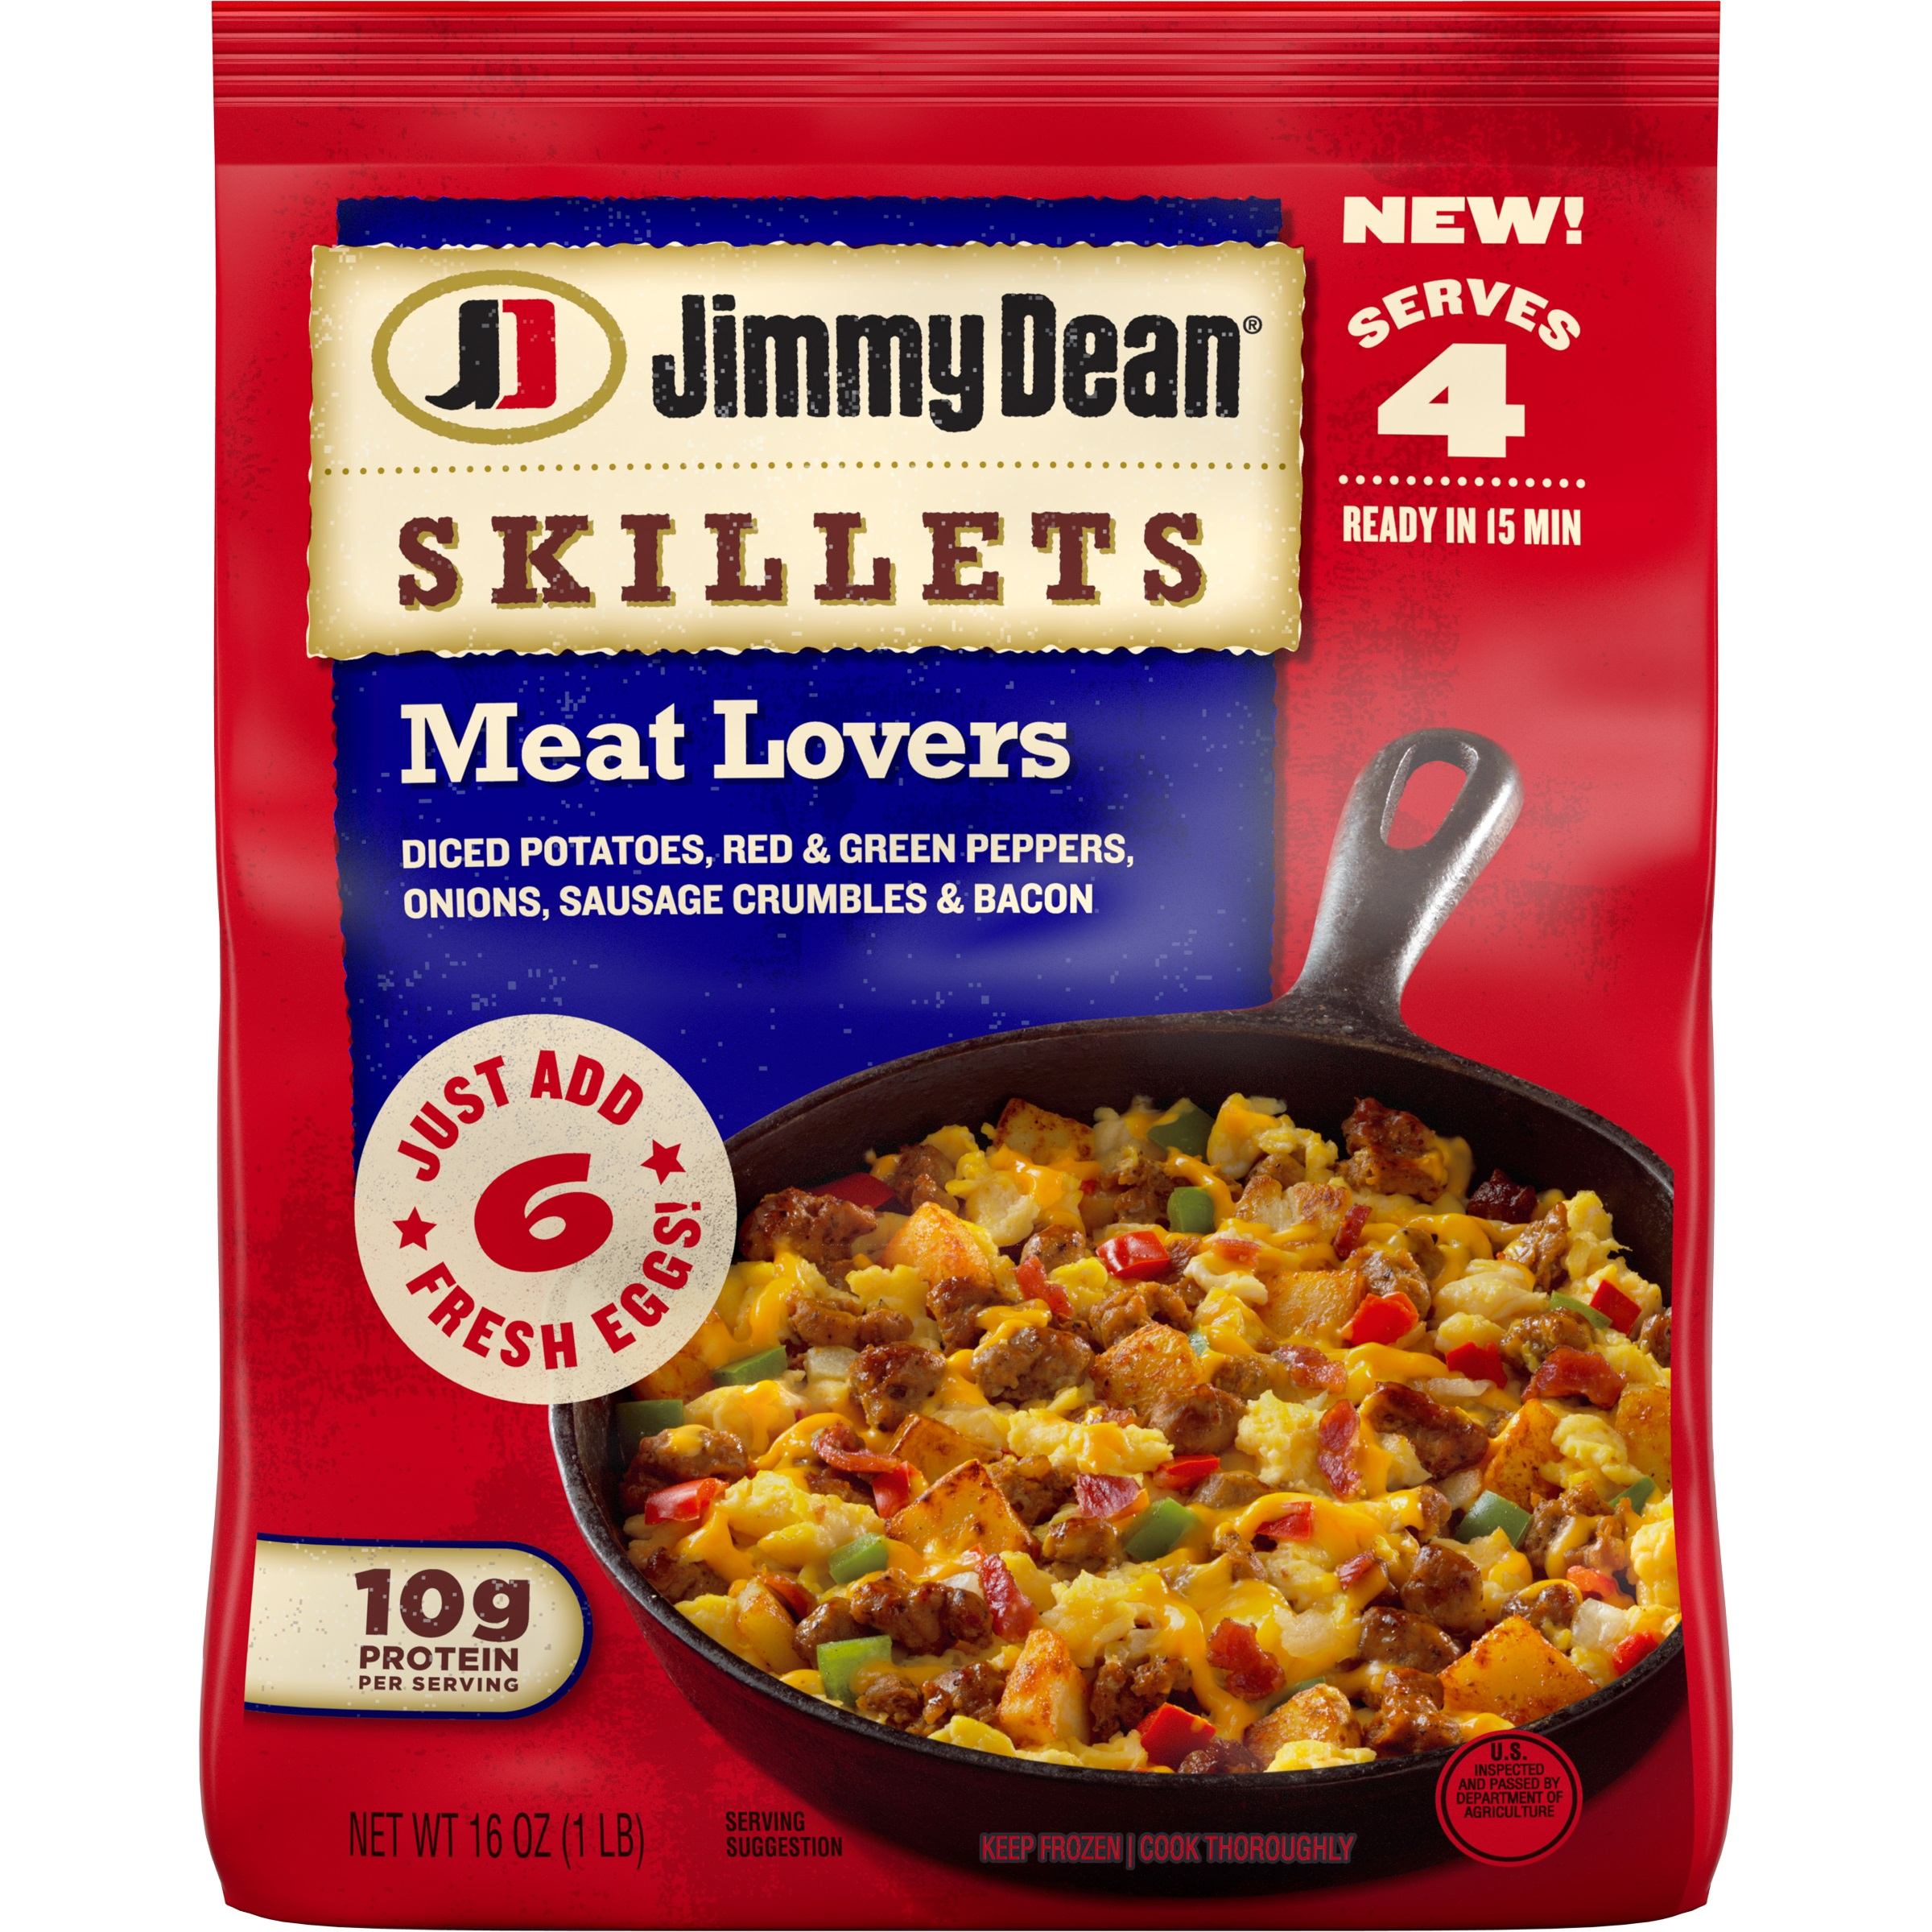 Jimmy Dean Skillets provide a new take on a breakfast staple, delivering a savory, breakfast classic in two delicious varieties: Sausage and new Meat Lovers